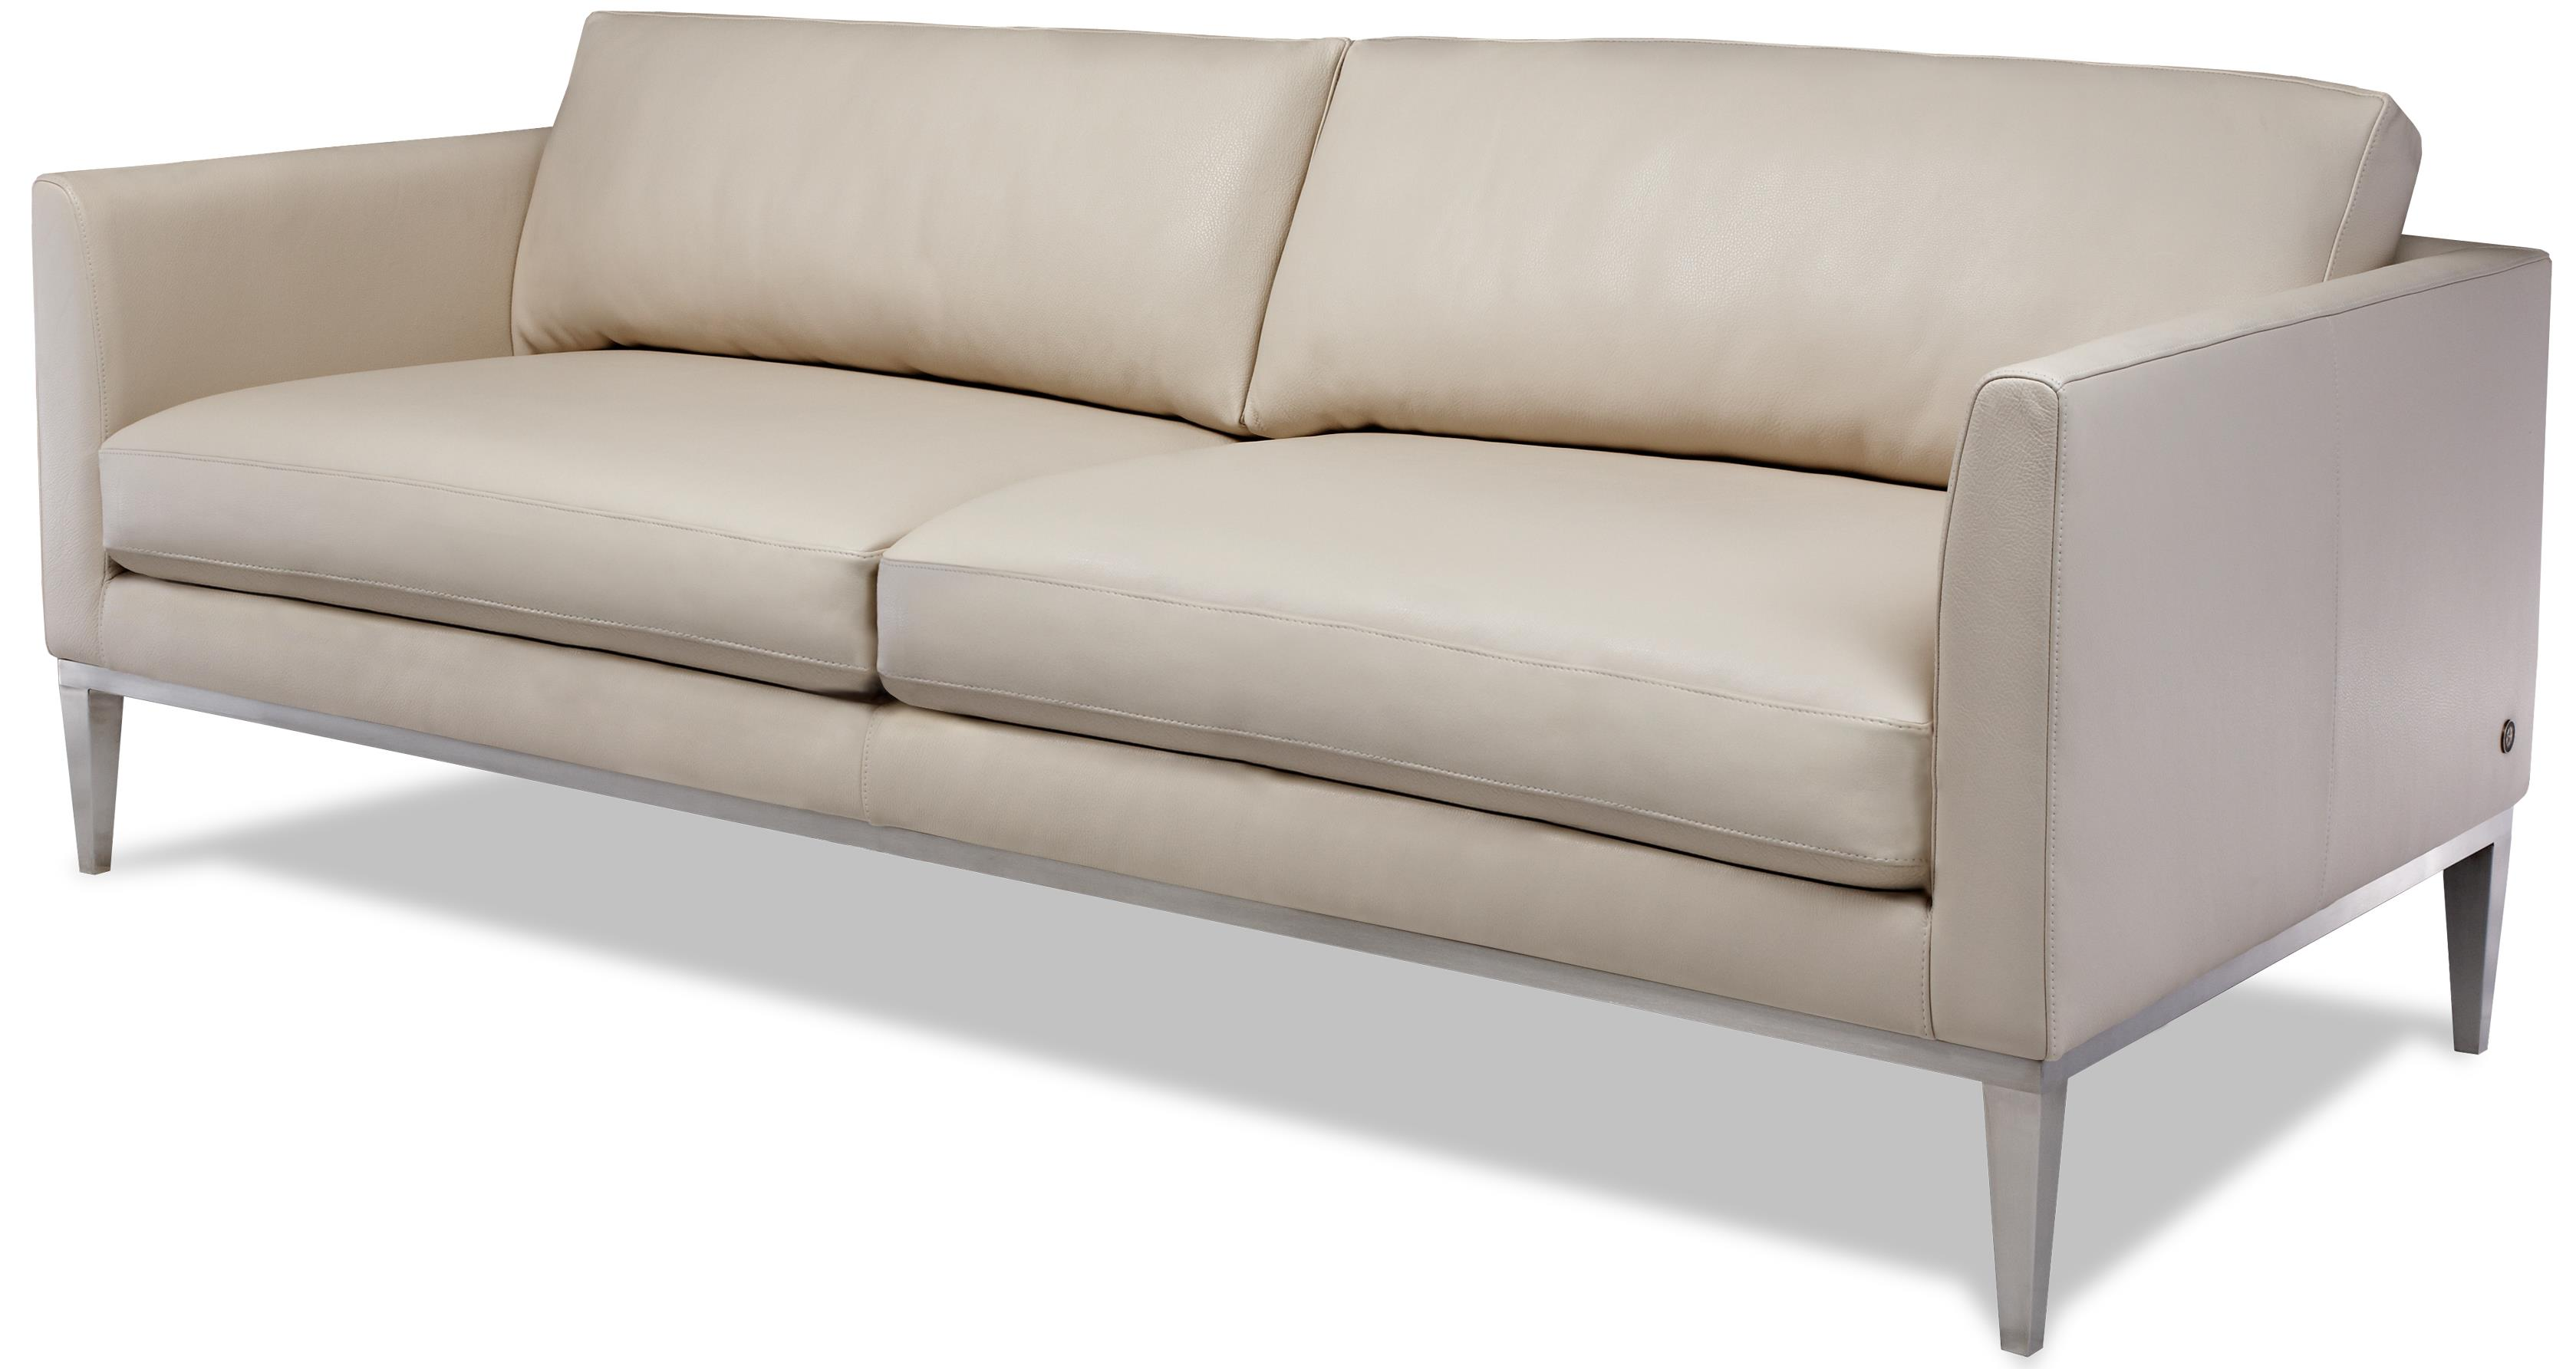 henley sofa and chair modern modular sectional american leather contemporary with high leg